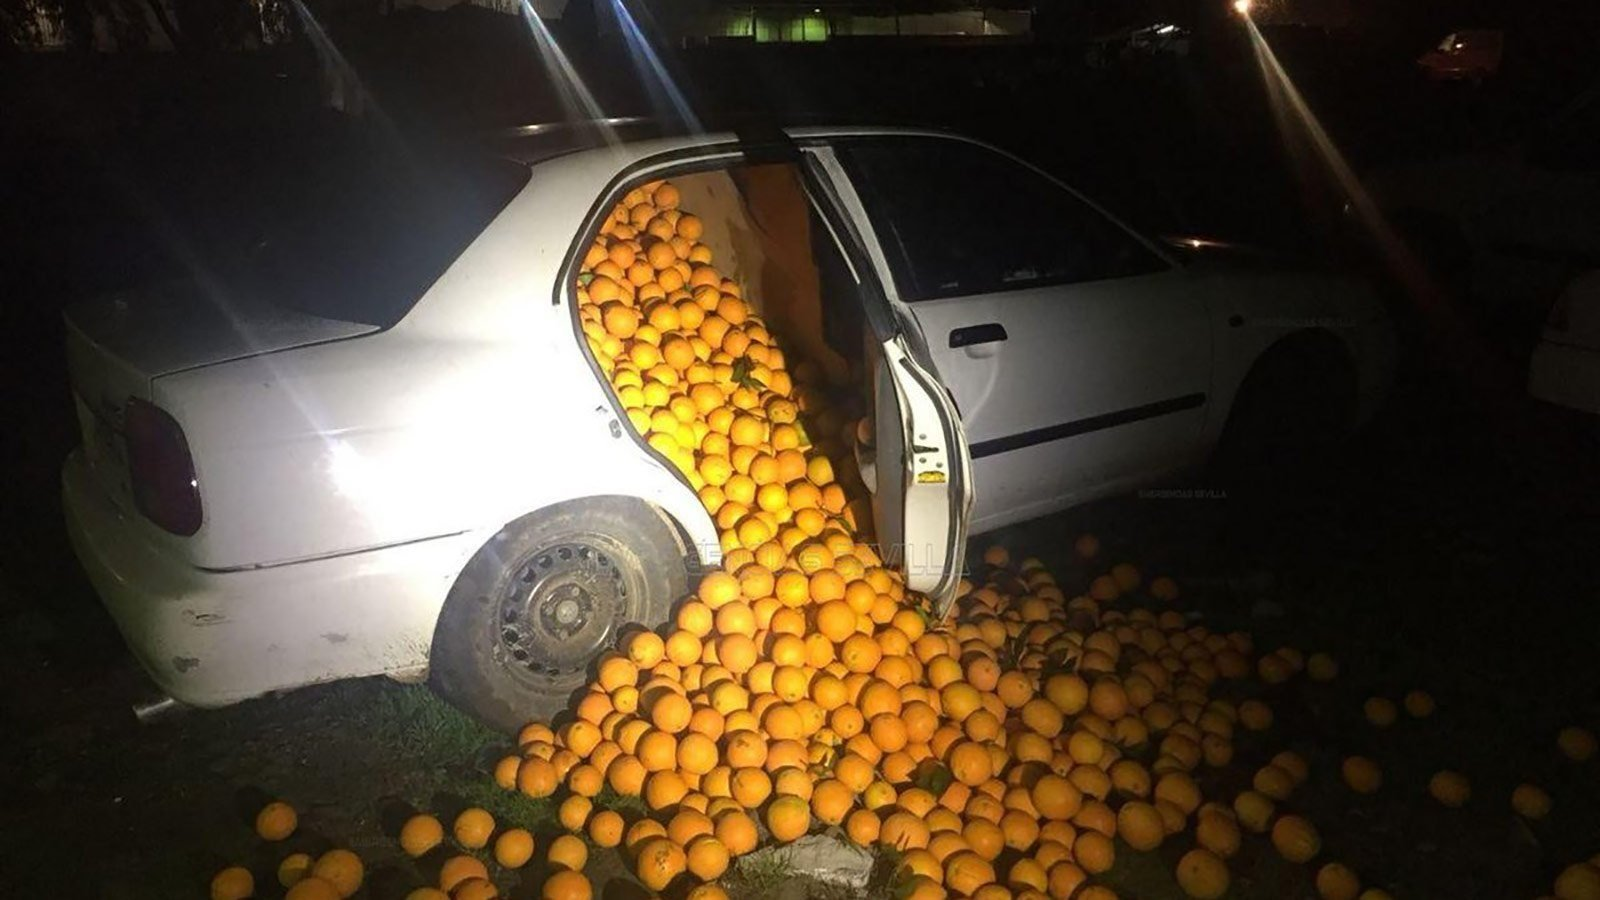 Thieves busted with 9000 pounds of oranges crammed into 3 cars